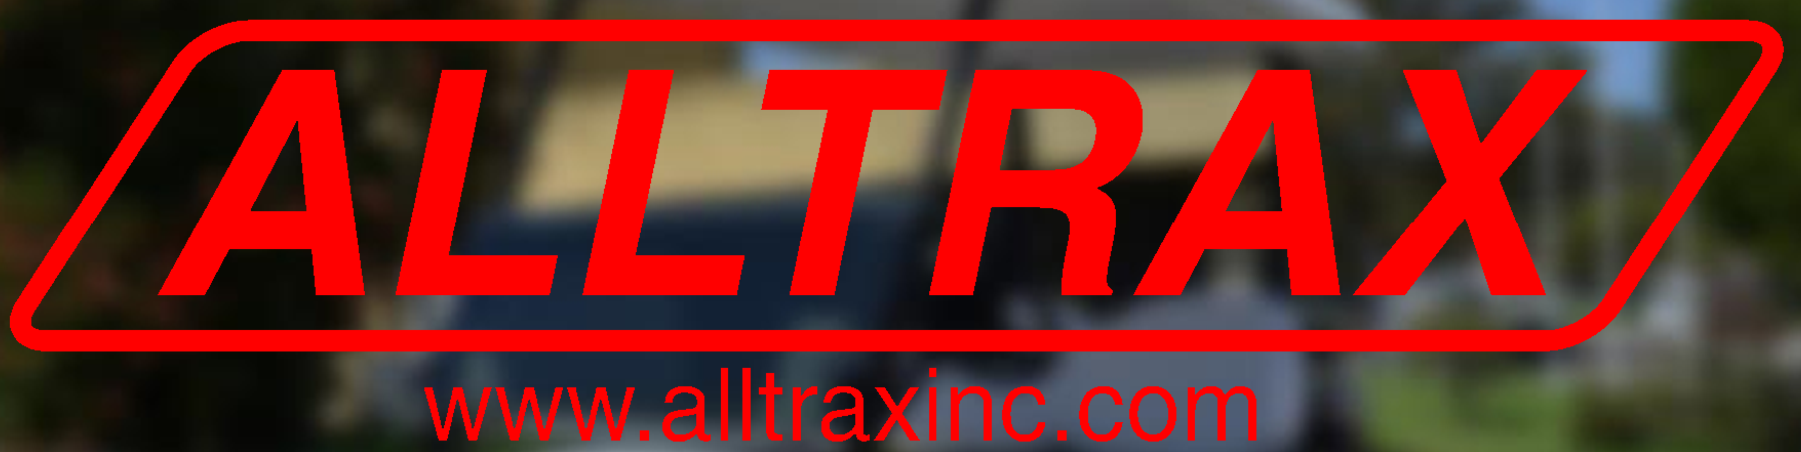 Installation Guide For Xct Controllers On Club Car Precedent Models Alltrax Controller Wiring Diagram